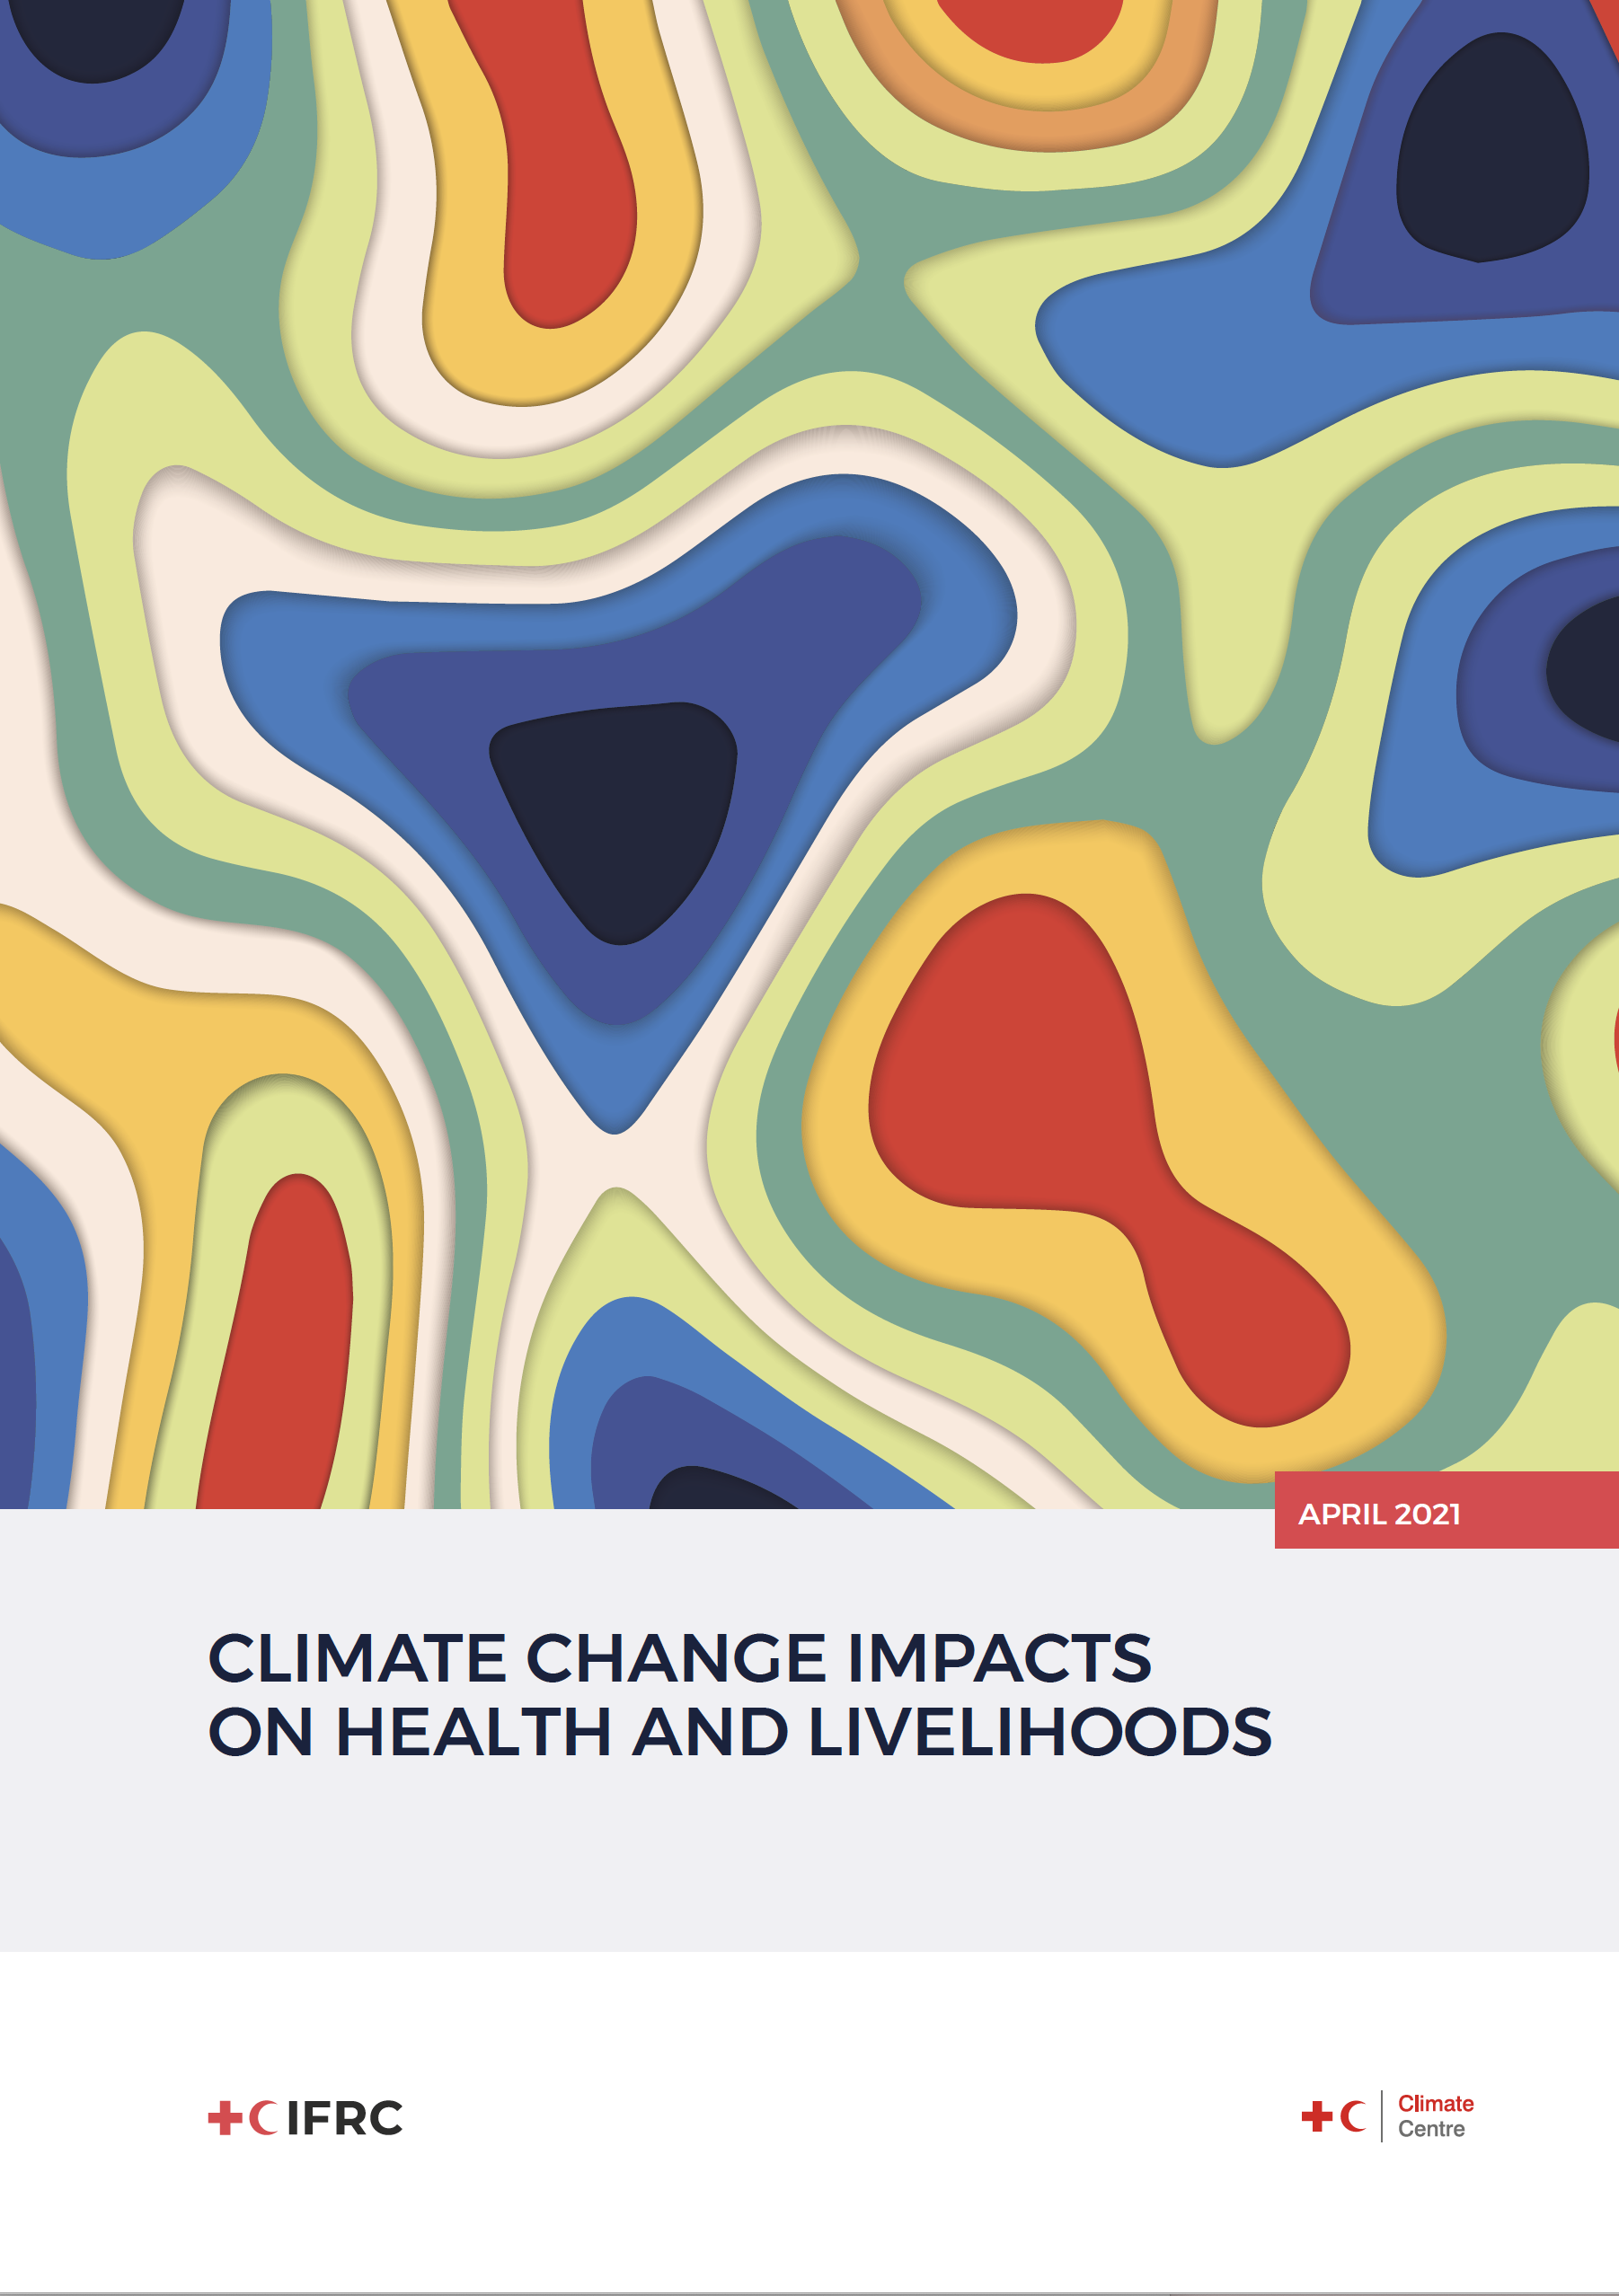 Climate Change Impacts on Health and Livelihoods